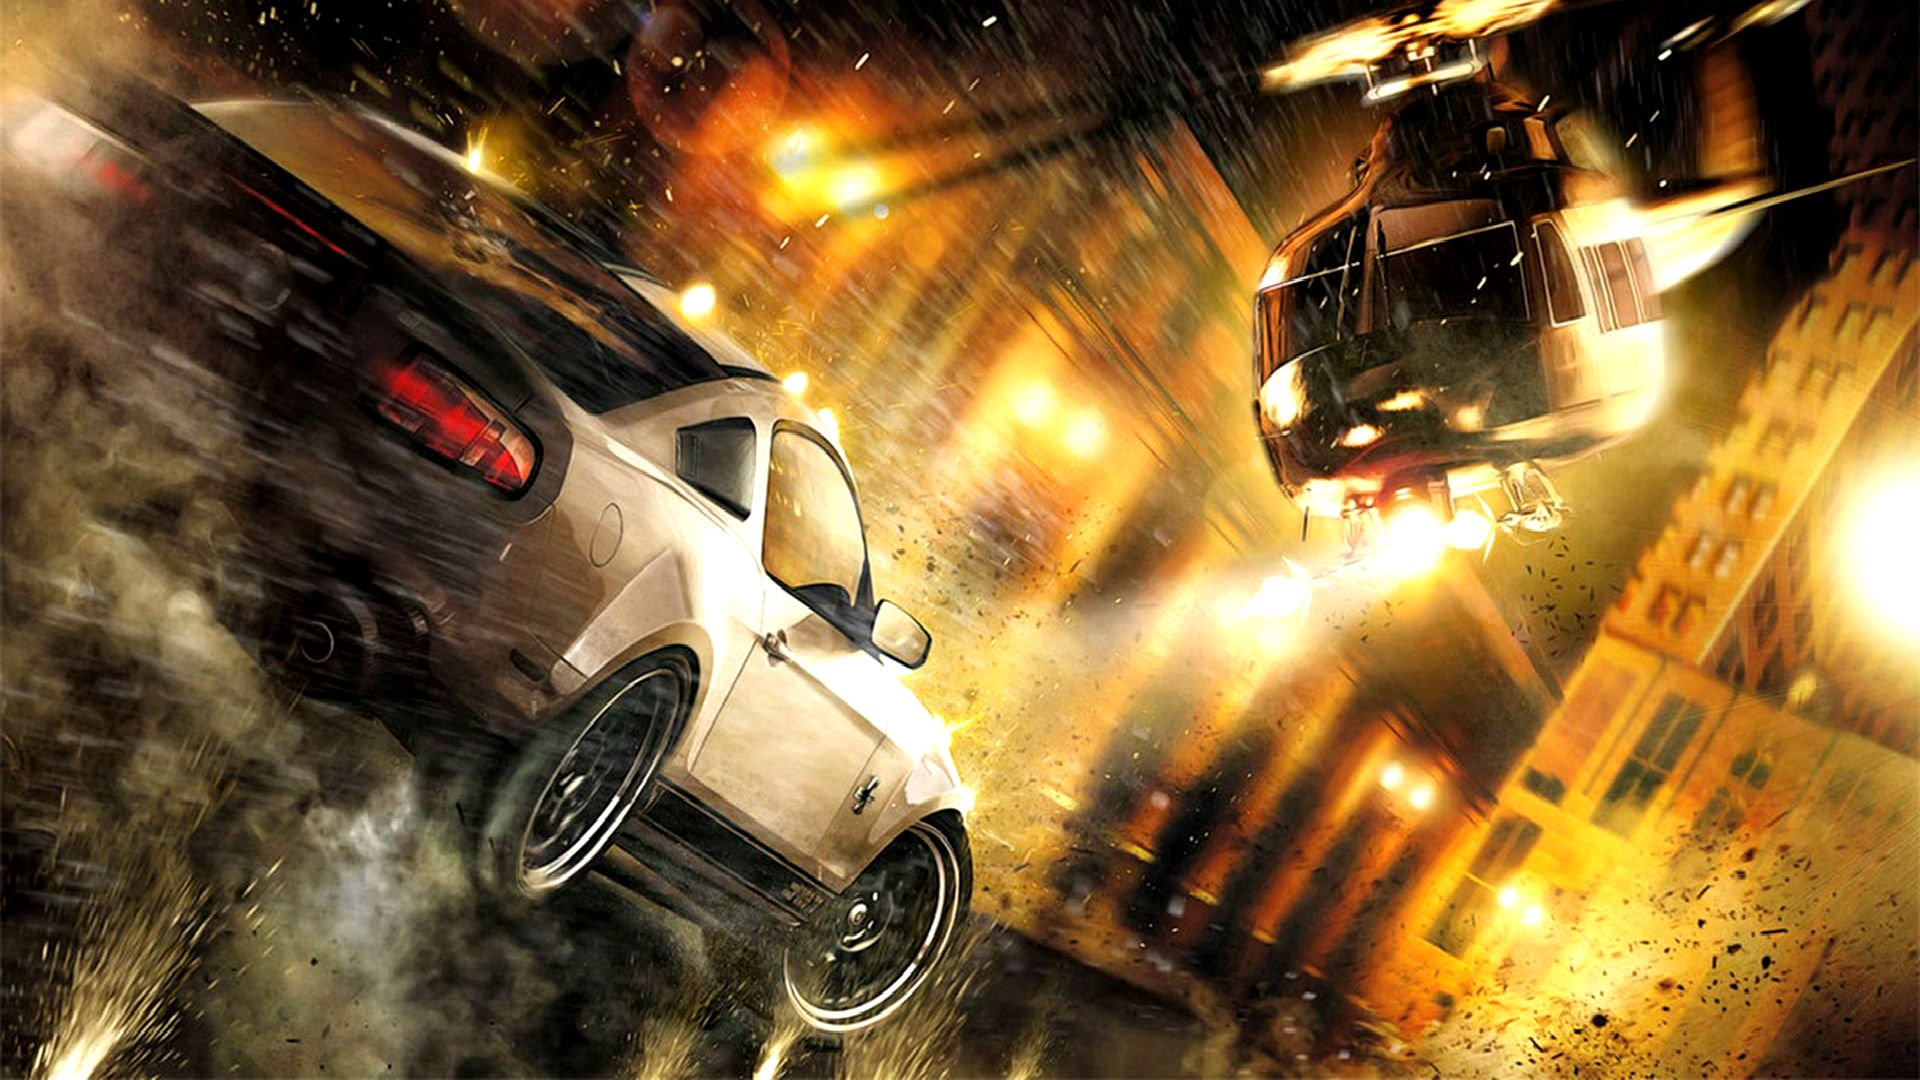 Beautiful Cars Hd Wallpapers Download Need For Speed Action Helicopter Fire Wallpaper